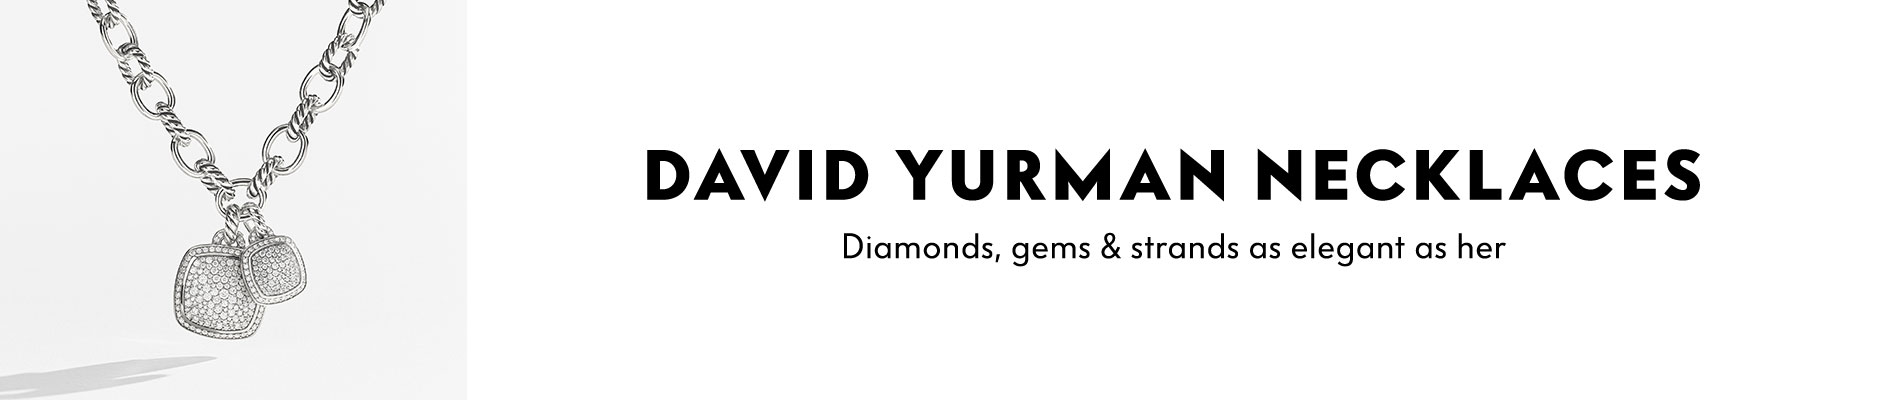 David Yurman Necklaces - Diamonds, gems & strands as elegant as her